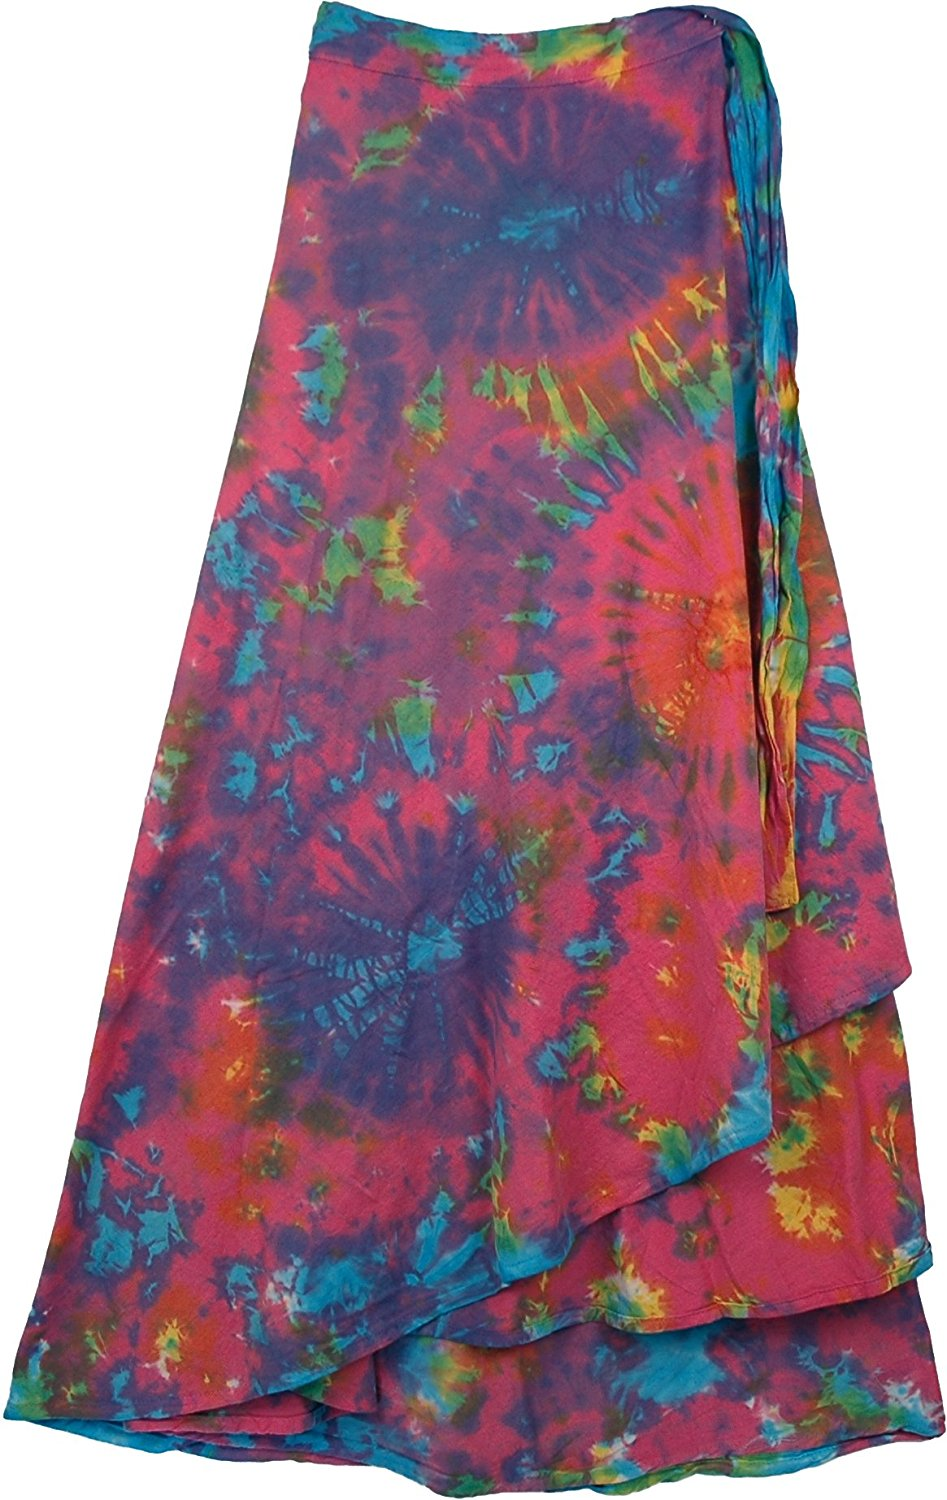 "TLB Killarney Tie Dye Wrap Around Long Skirt - Blue Tie Dye - L: 37""; W: Free Size"